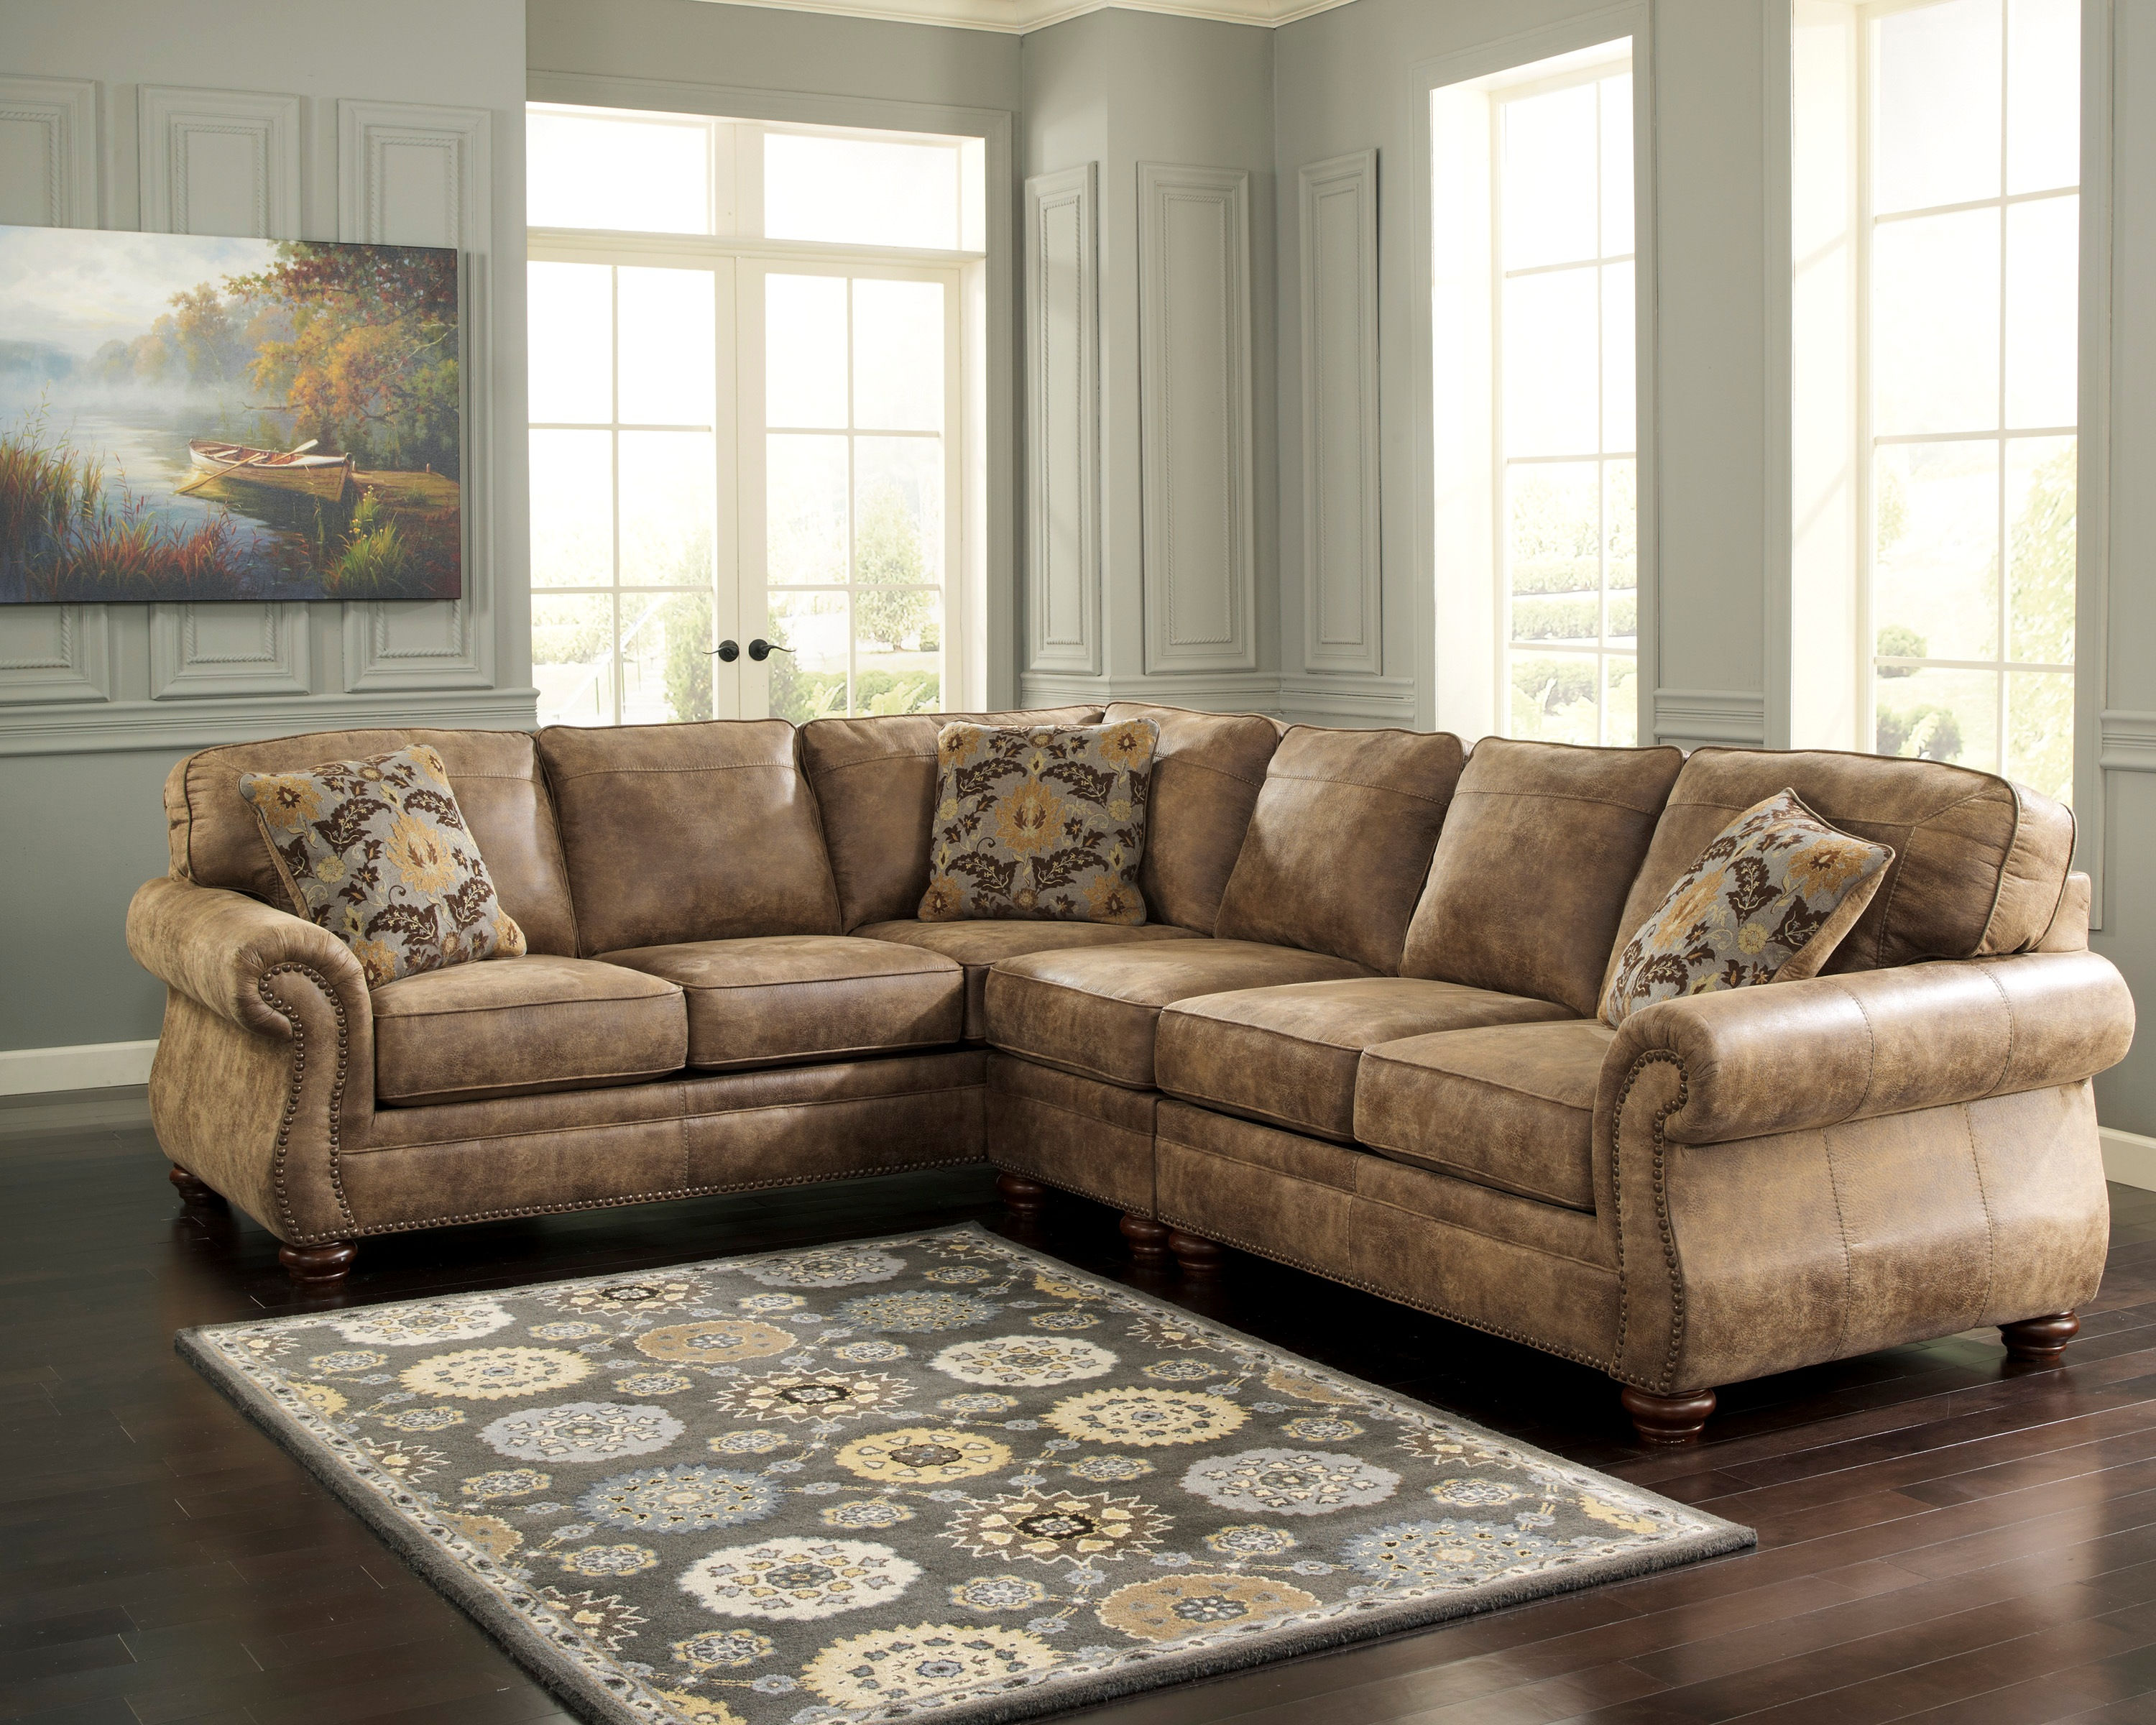 Fancy Larkinhurst Earth Sofa 99 On Sofas and Couches Set with Larkinhurst Earth Sofa